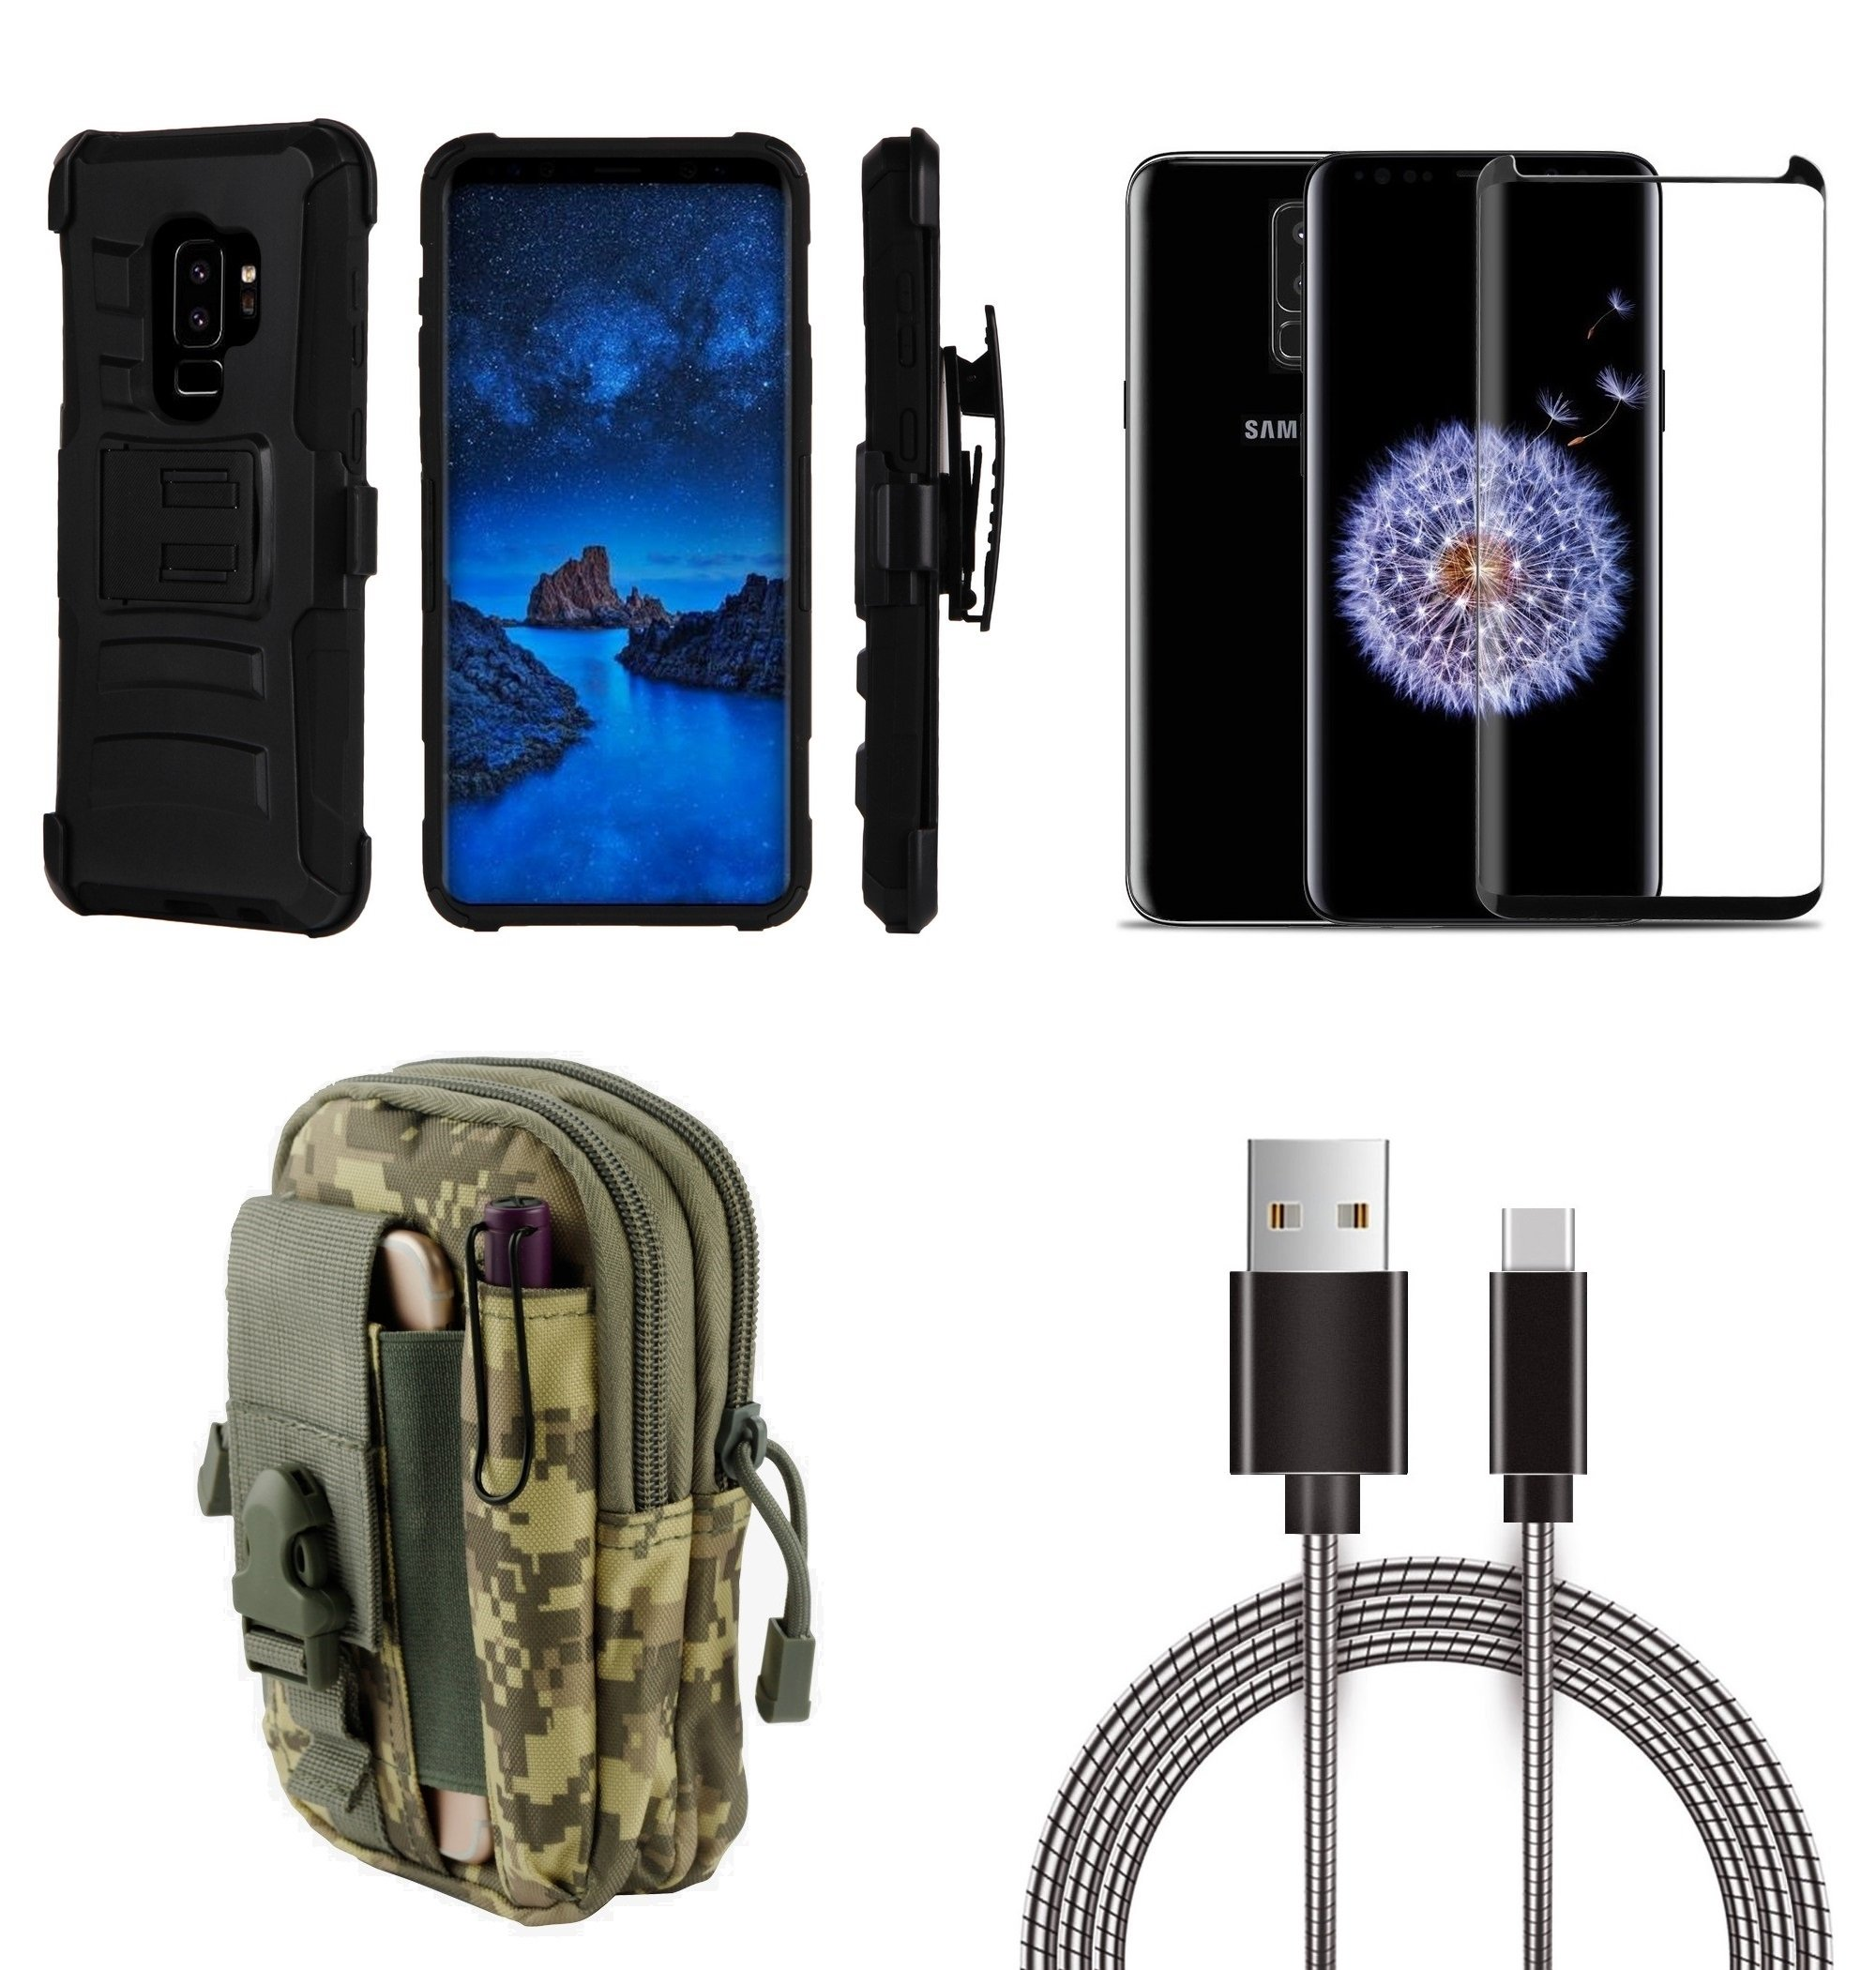 Samsung Galaxy S9+ Plus - Bundle: Dual Layer Armor Kickstand Belt Holster Case (Black), ACU Camo Tactical EDC MOLLE Utility Waist Pack Holder Pouch, Screen Protector, Metal USB Cable, Atom Cloth